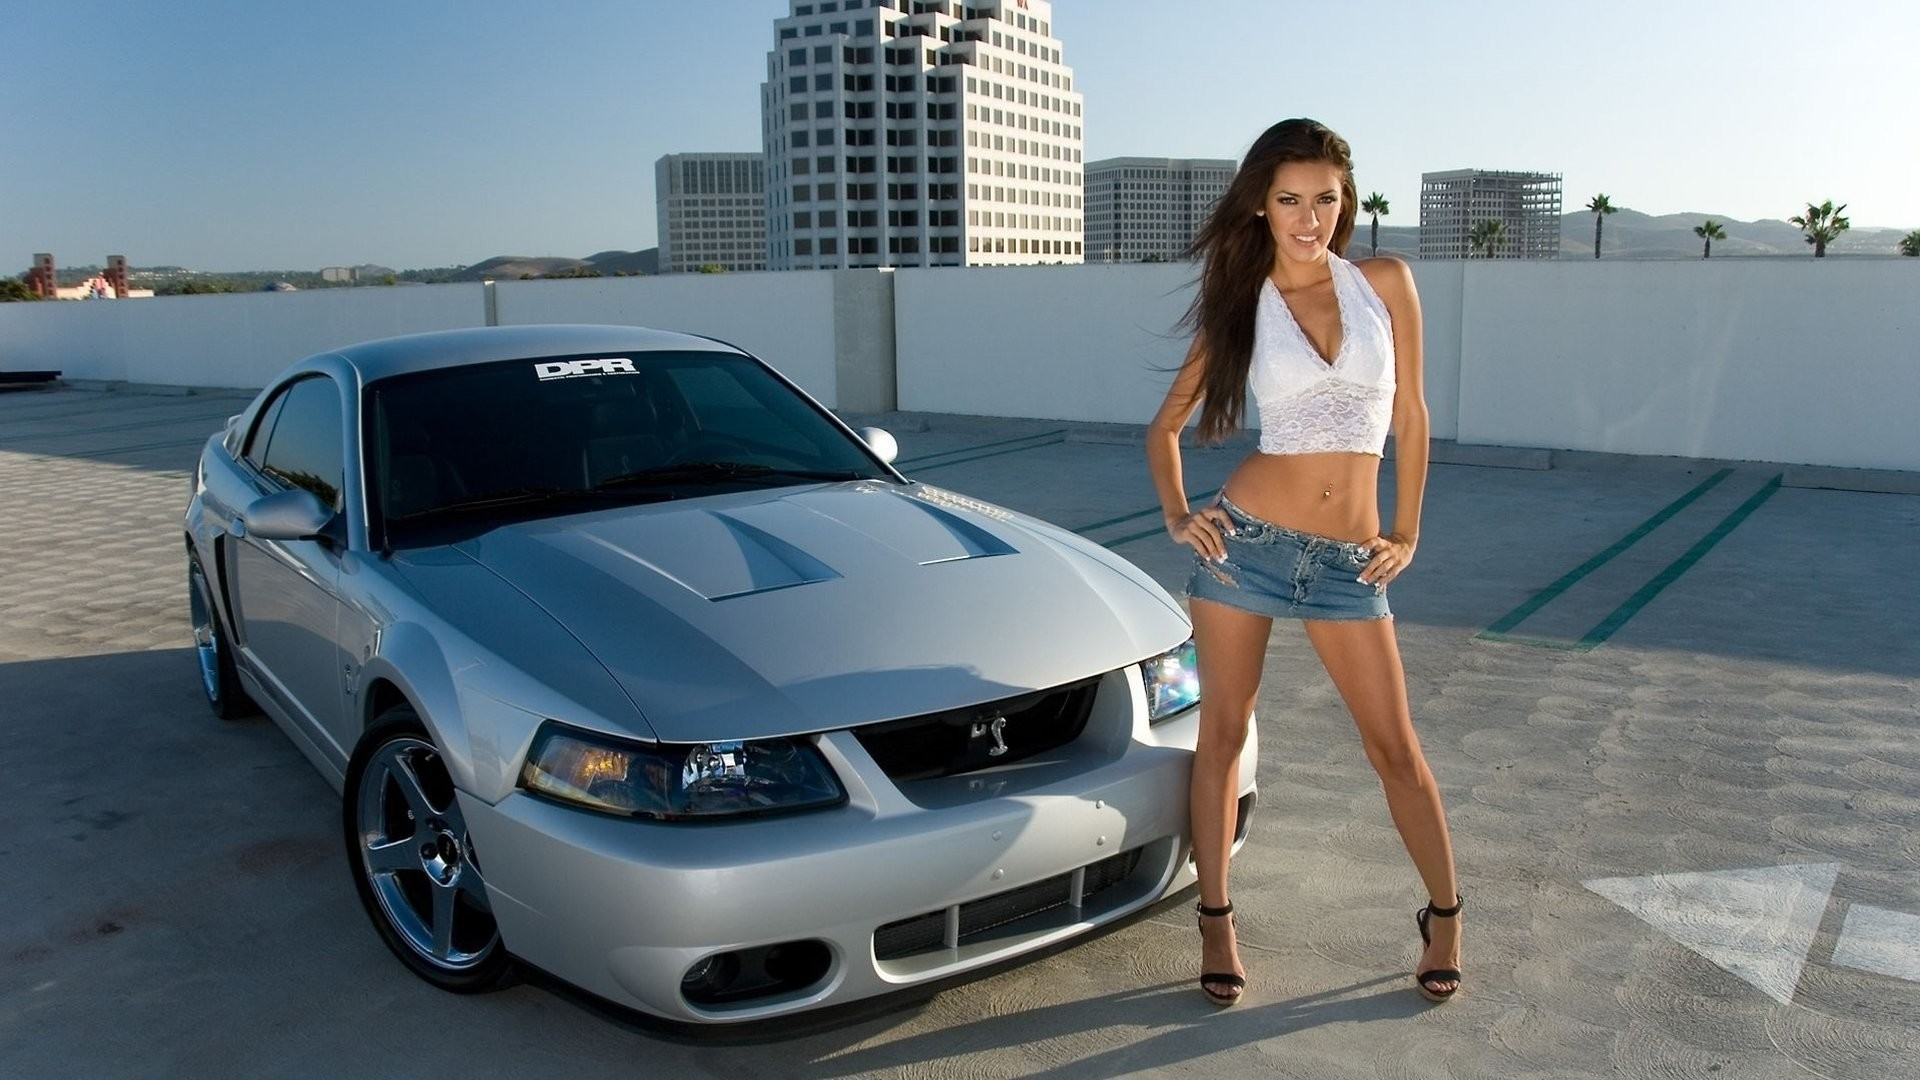 1920x1080 HD Wallpaper | Background ID:152374.  Vehicles Ford Mustang. 14  Like. Favorite